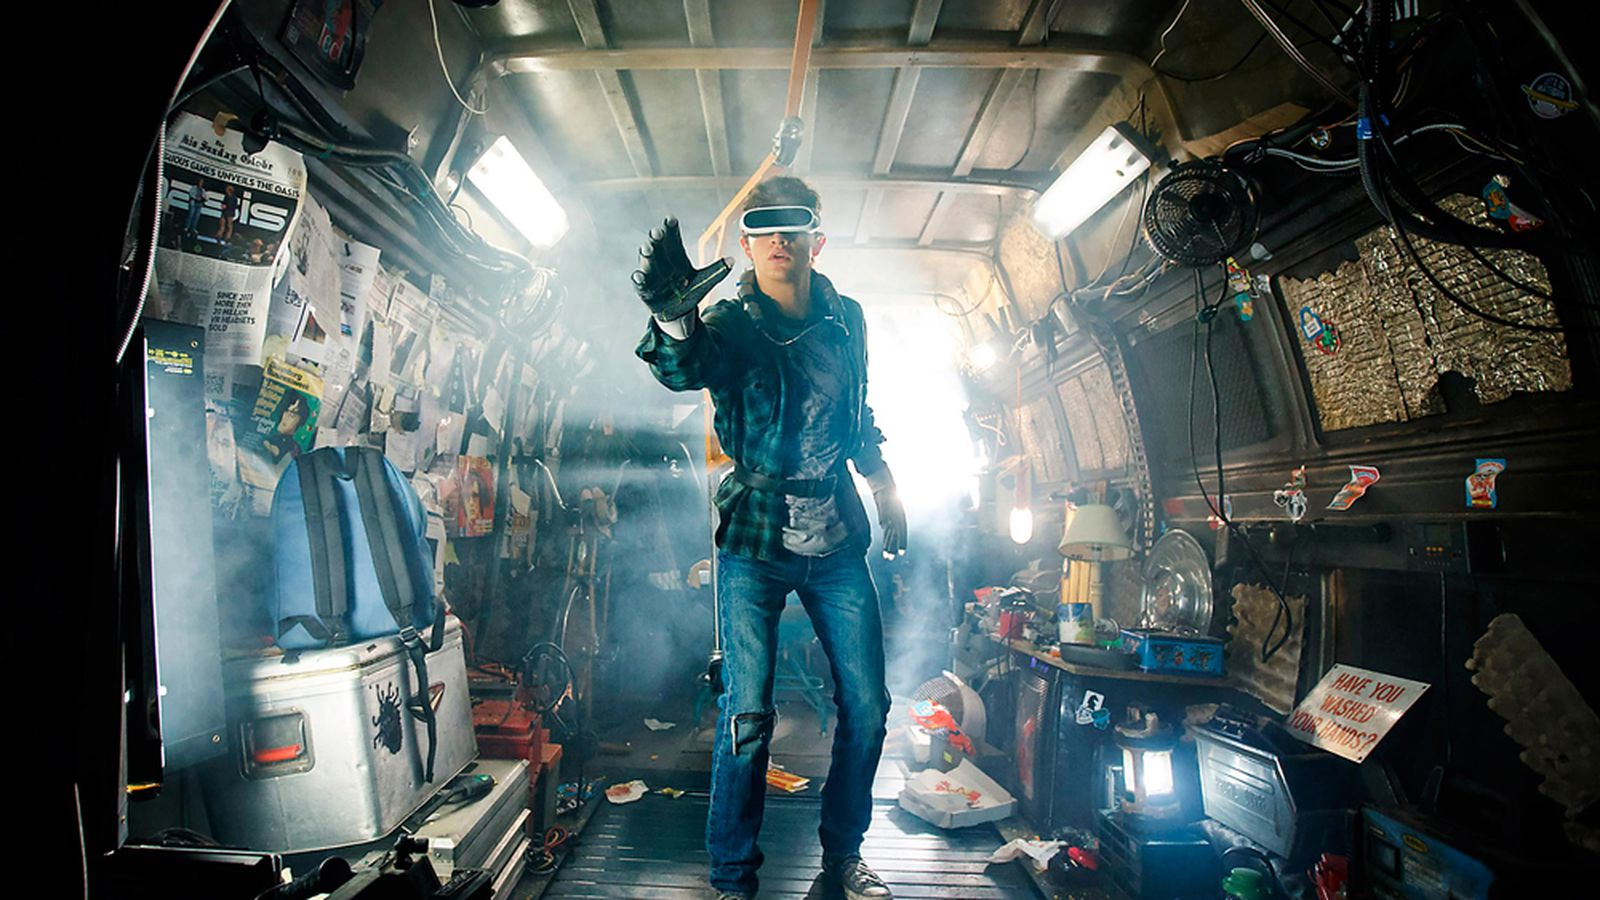 Watch: Steven Spielberg's 'Ready Player One' trailer released at Comic-Con